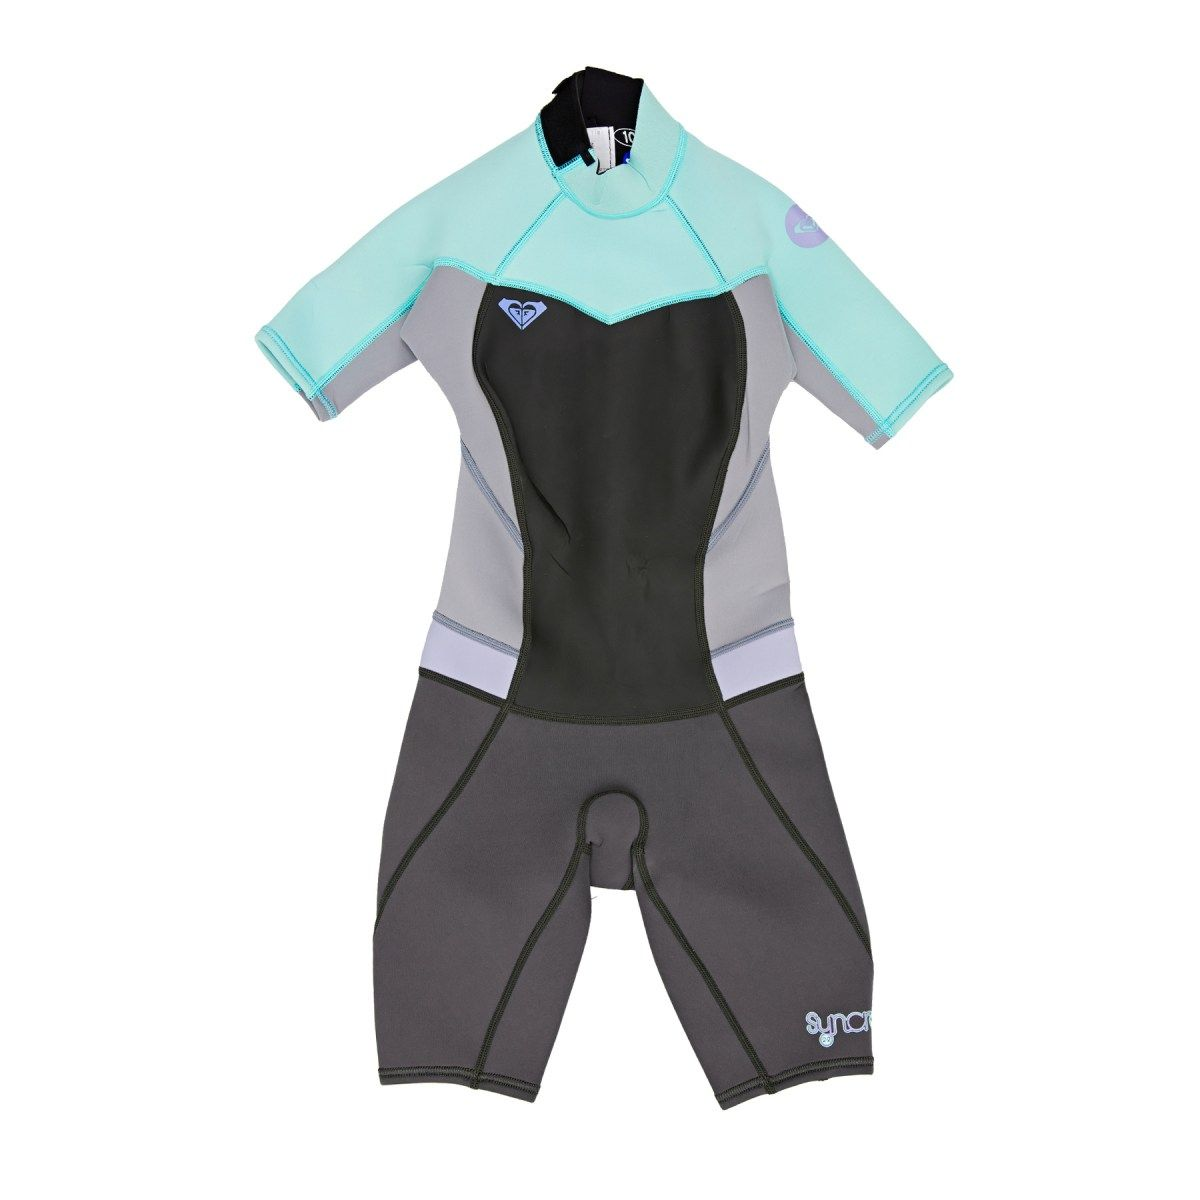 Girl s Roxy Wetsuits - Roxy Syncro 2 1mm FL Back Zip Shorty Wetsuit -  Graphite 69c747653